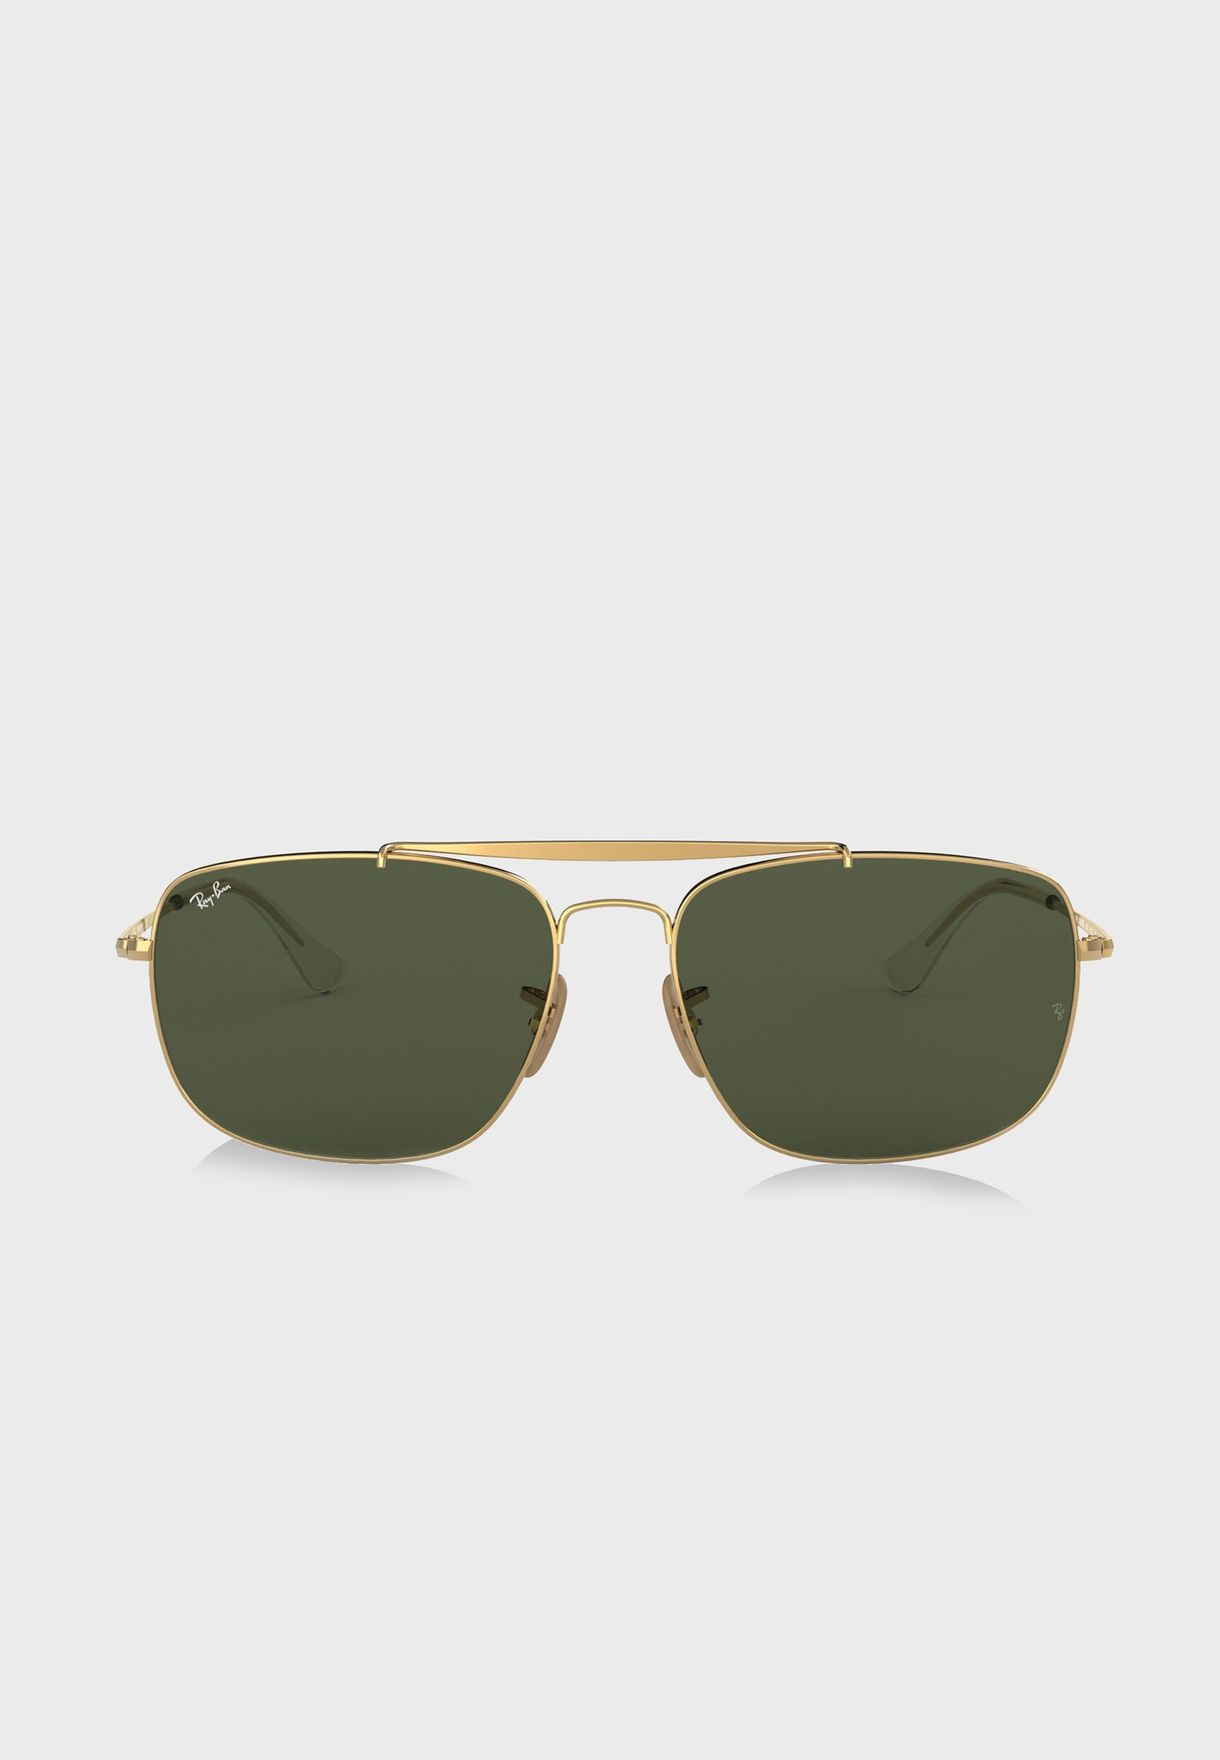 1643e511f0 Shop Ray-Ban gold 0RB3560 The Colonel Sunglasses 8053672866650 for ...